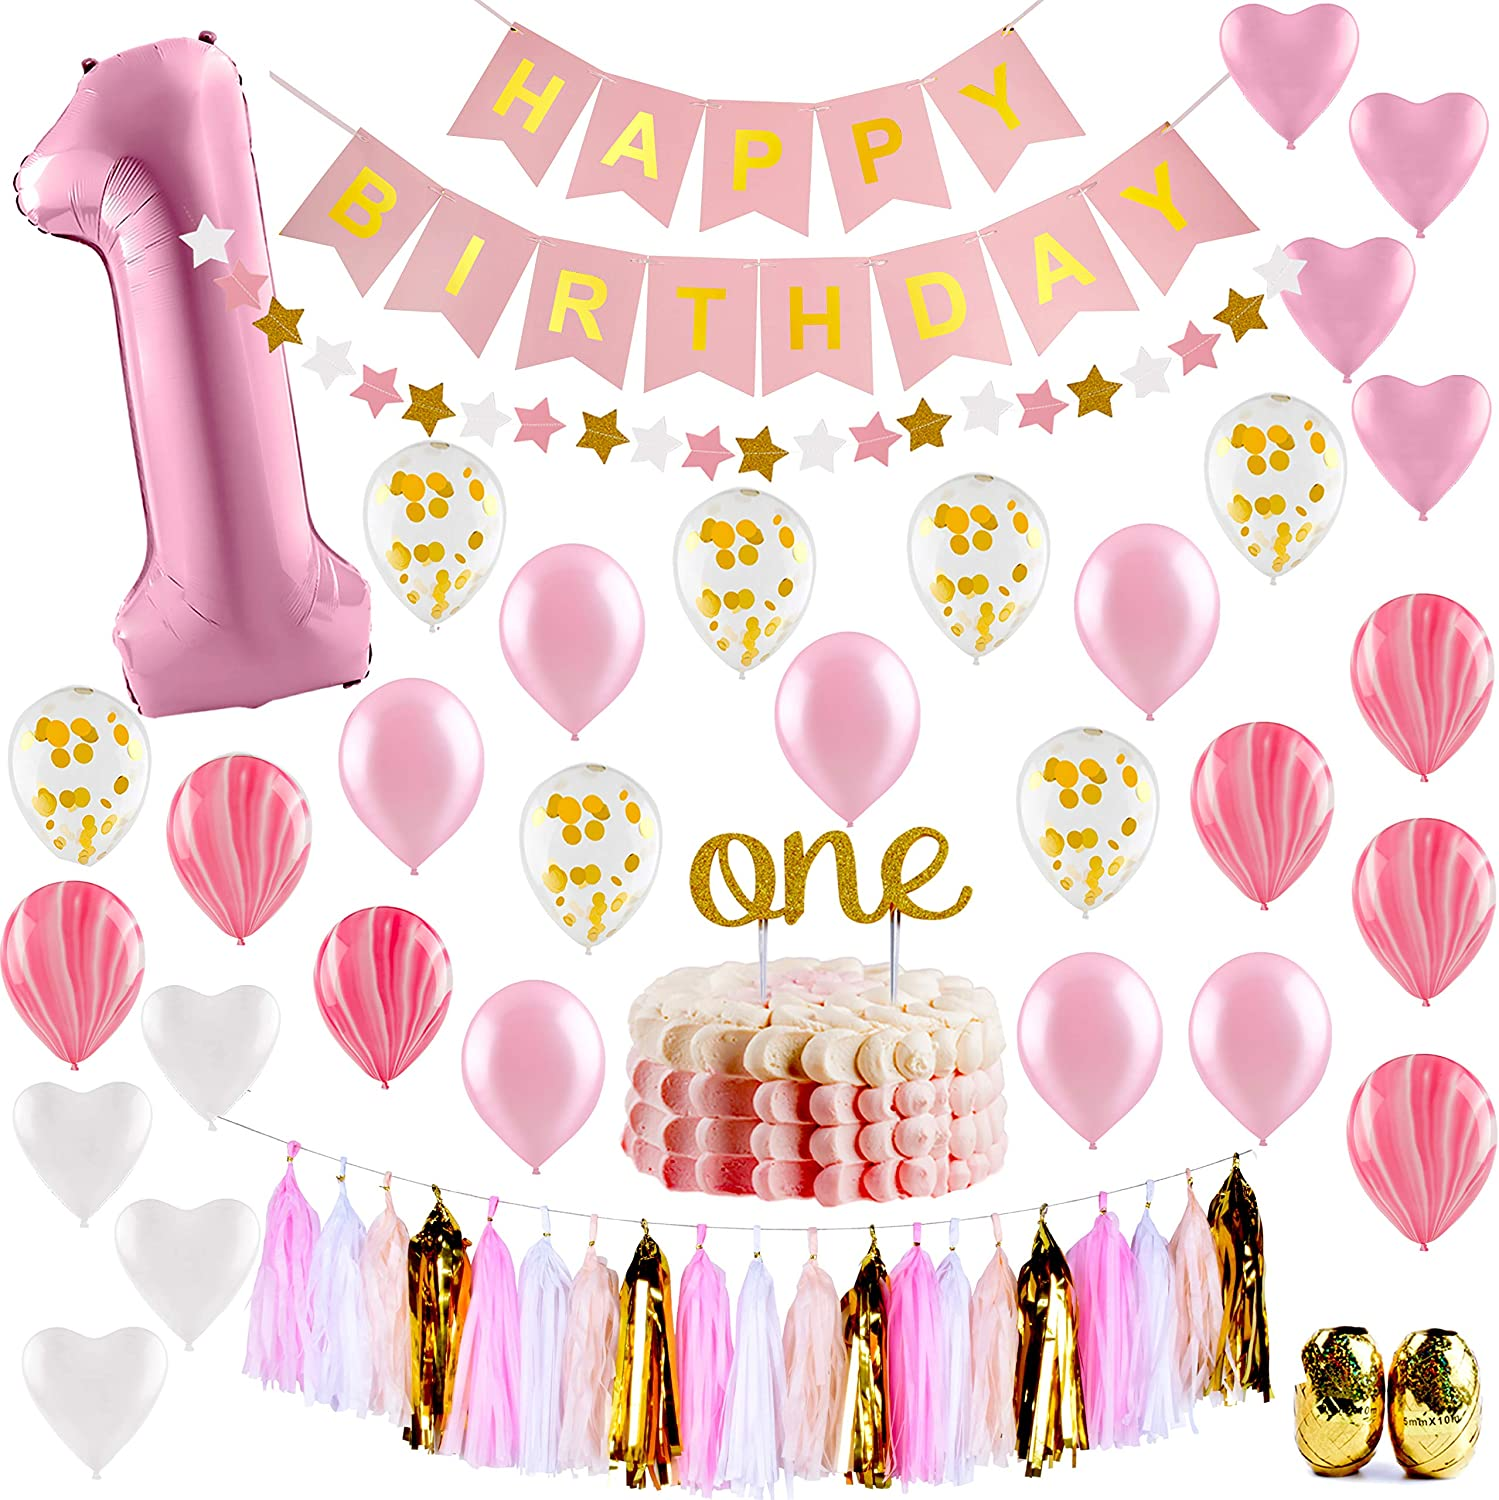 Amazon Com Baby Girl First Birthday Decorations 1st Birthday Girl Decorations Pink And Gold Party Supplies Happy First Birthday Banner Number 1 Heart And Confetti Balloons Premium One Cake Topper Toys